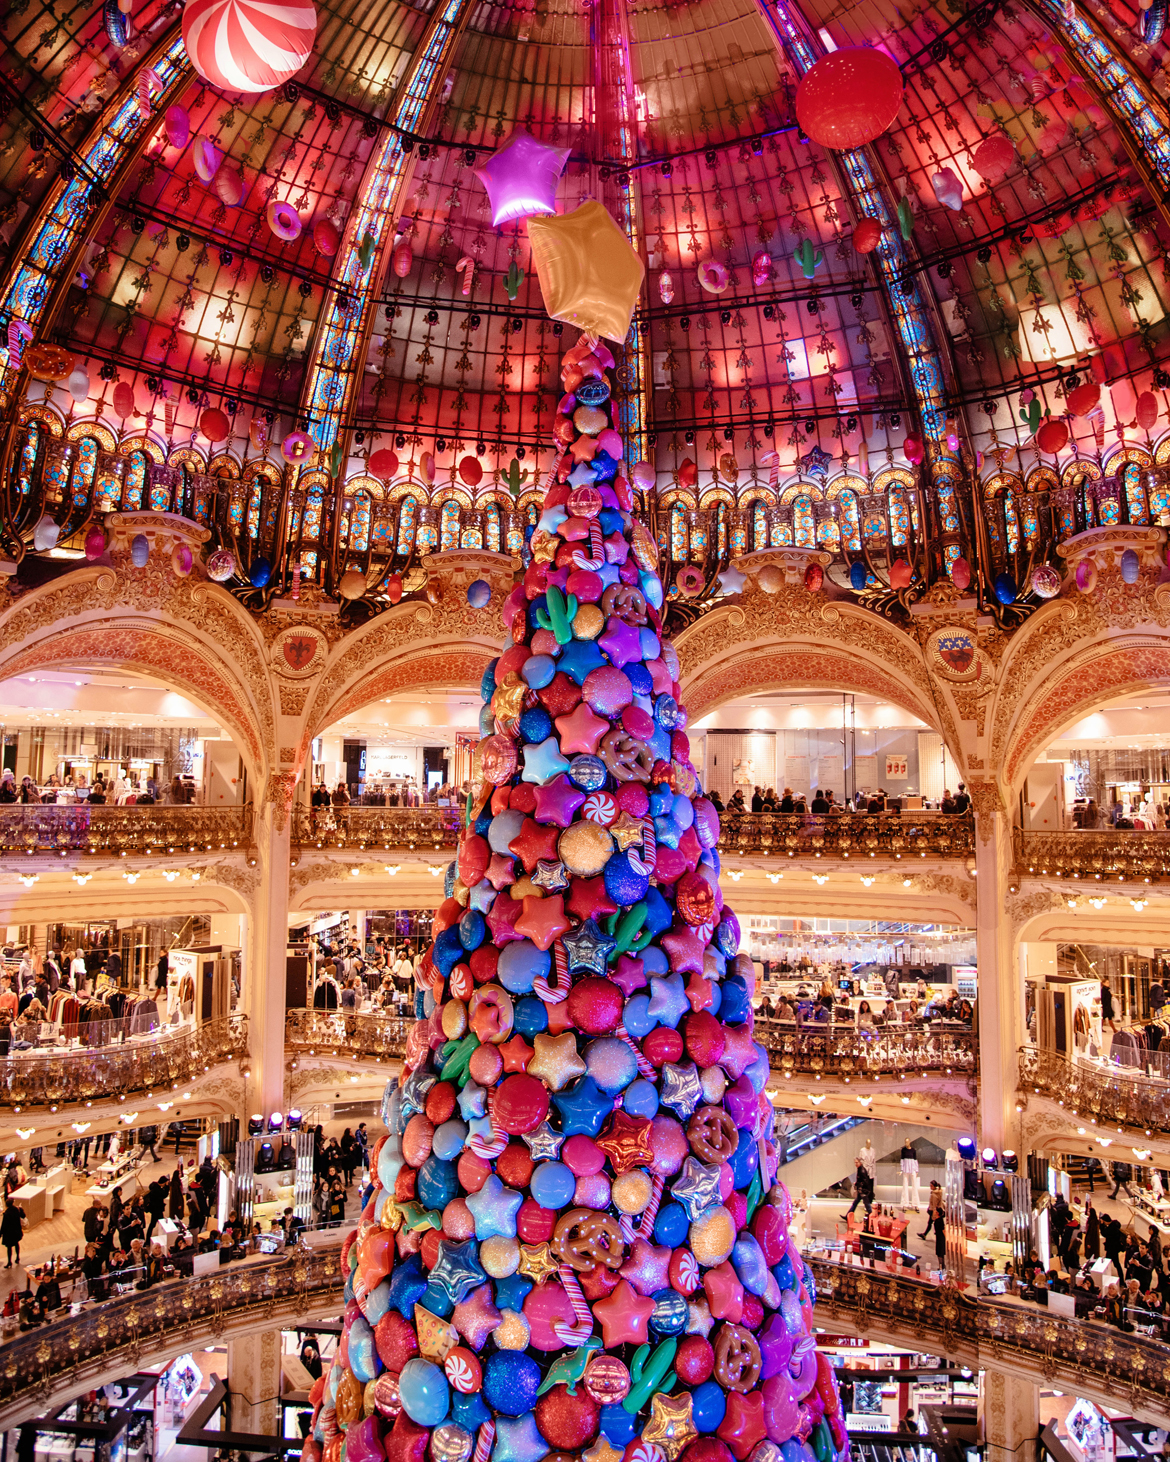 Galeries Lafayette Haussman Christmas Tree in Paris. Parigi in inverno. Cosa vedere in 3 tre giorni. By Laura Comolli